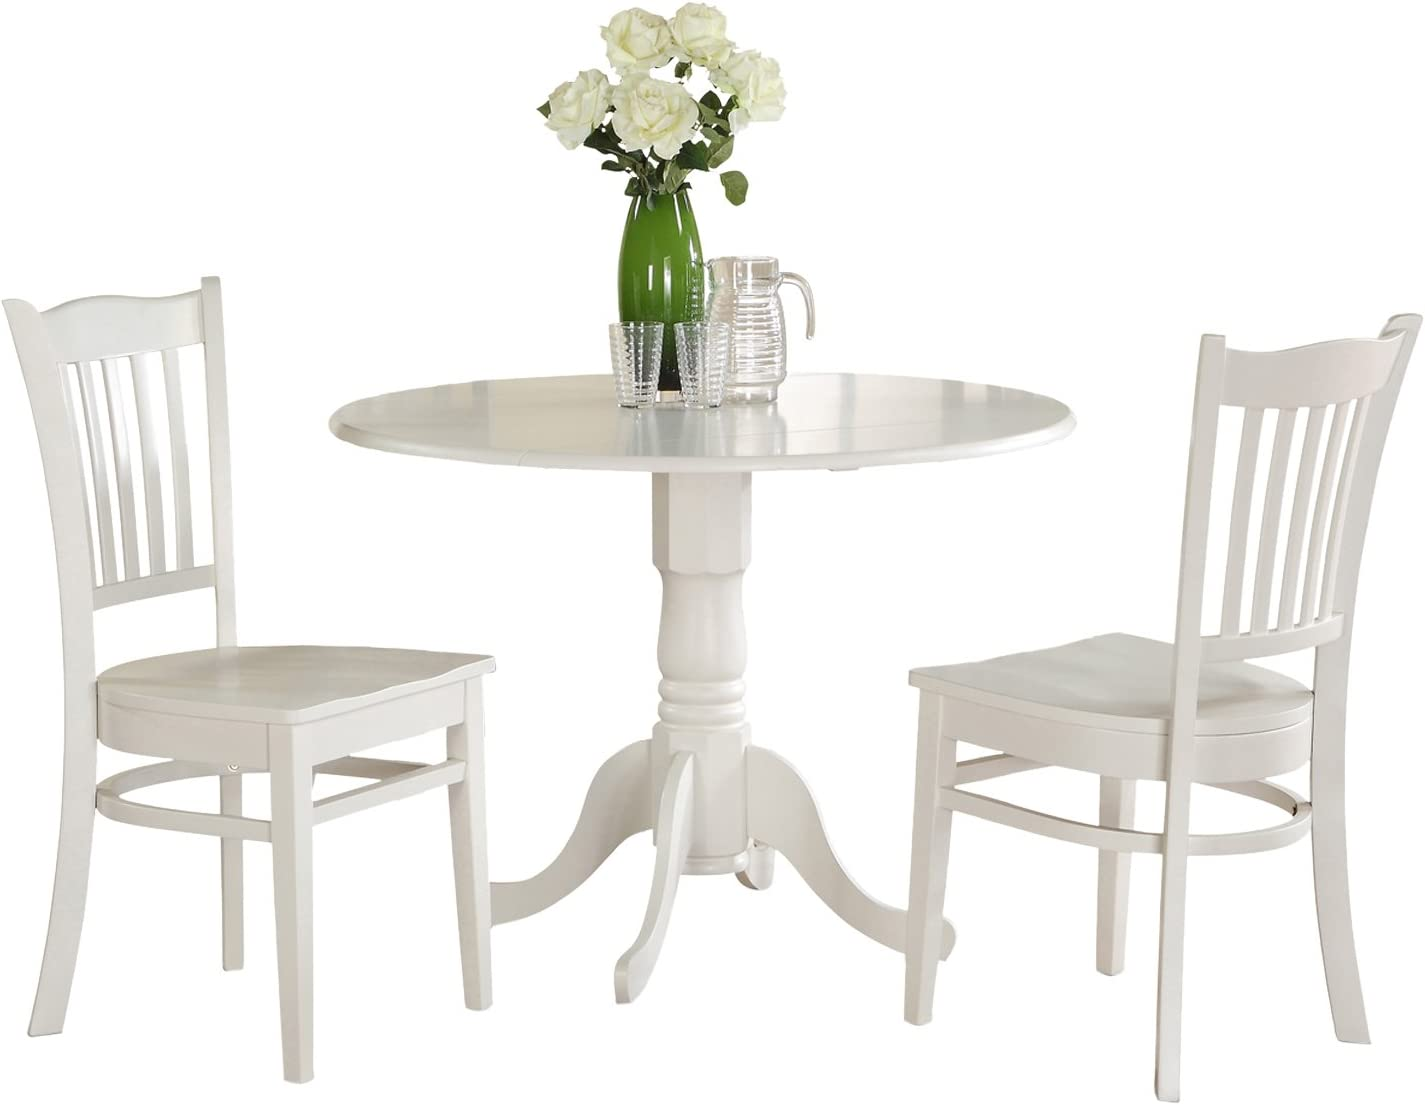 DLGR3-WHI-W 3 PC small Kitchen Table set-Kitchen Table and 2 Kitchen Chairs.